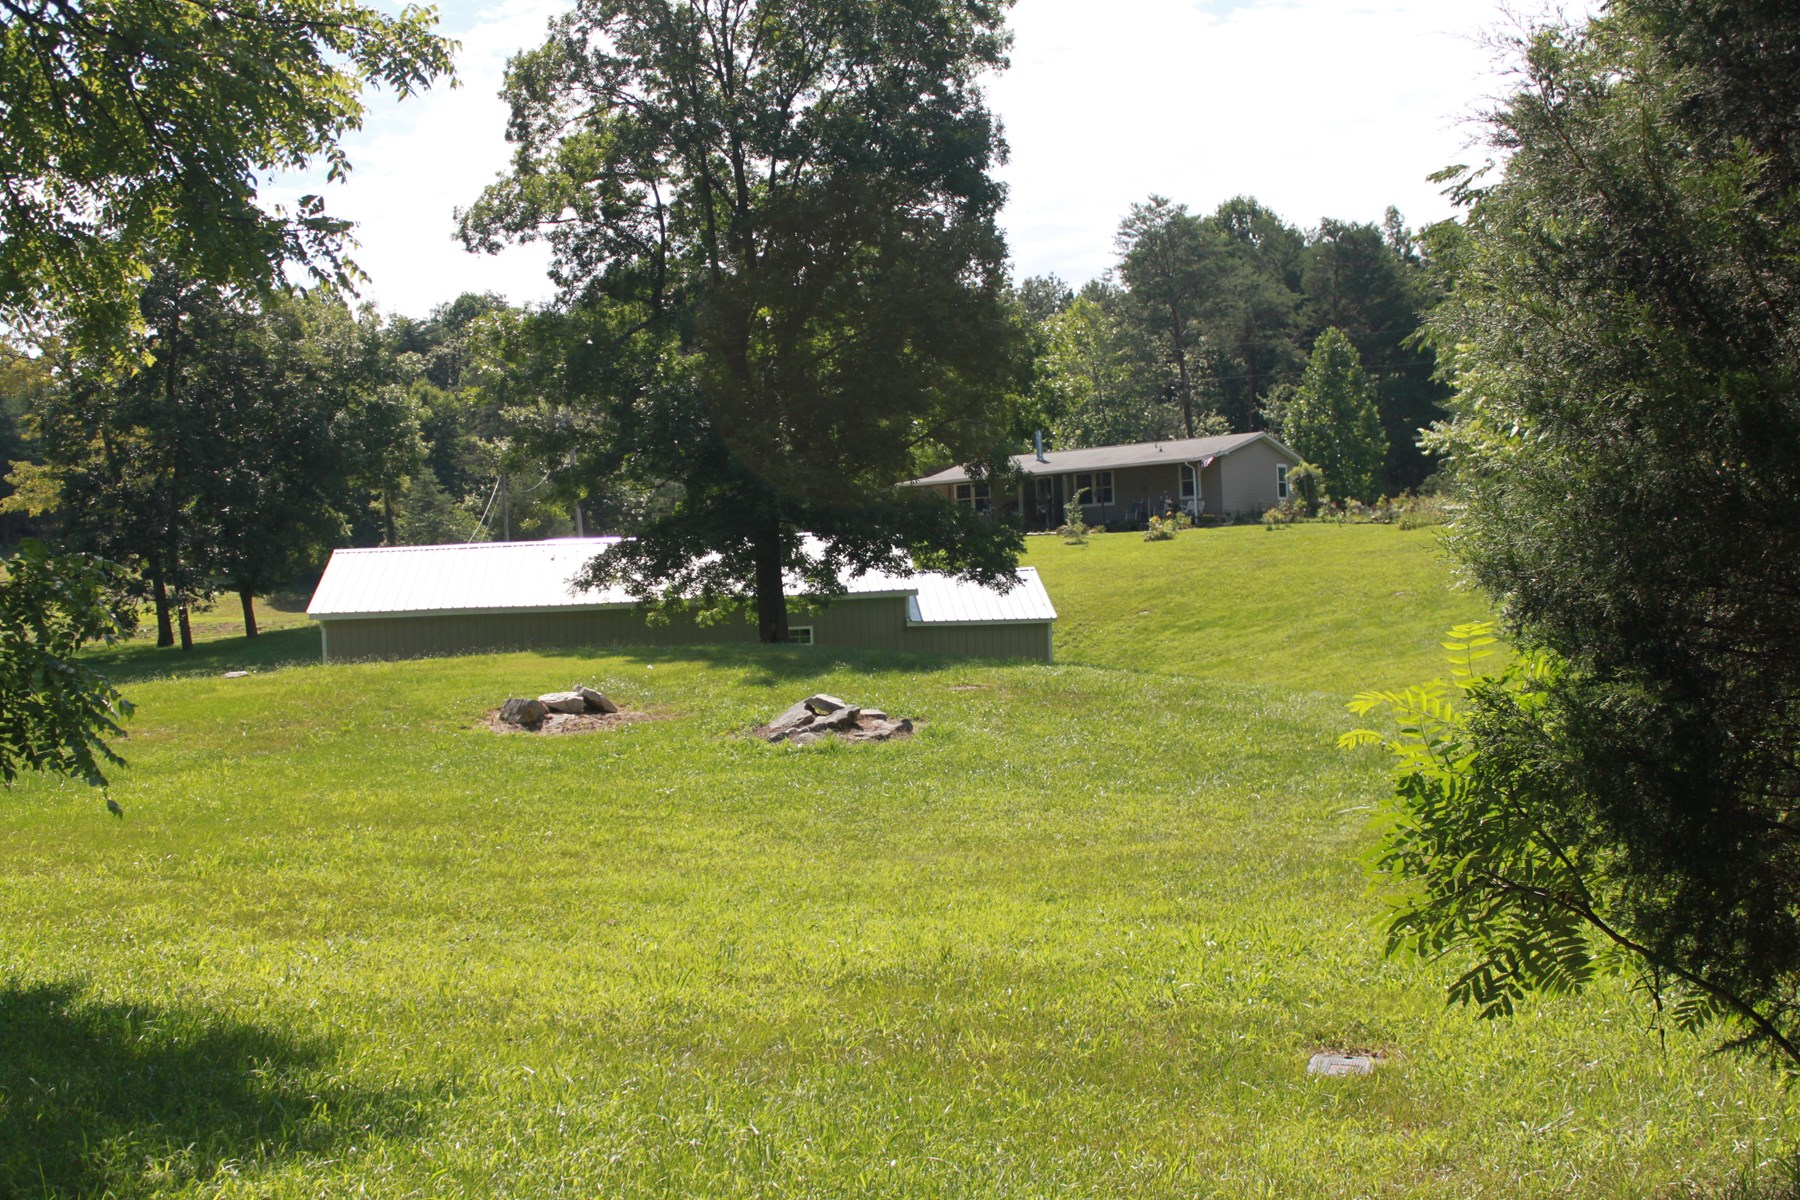 Country Home, Blueberry Farm & Hunting AcreageFor Sale in KY